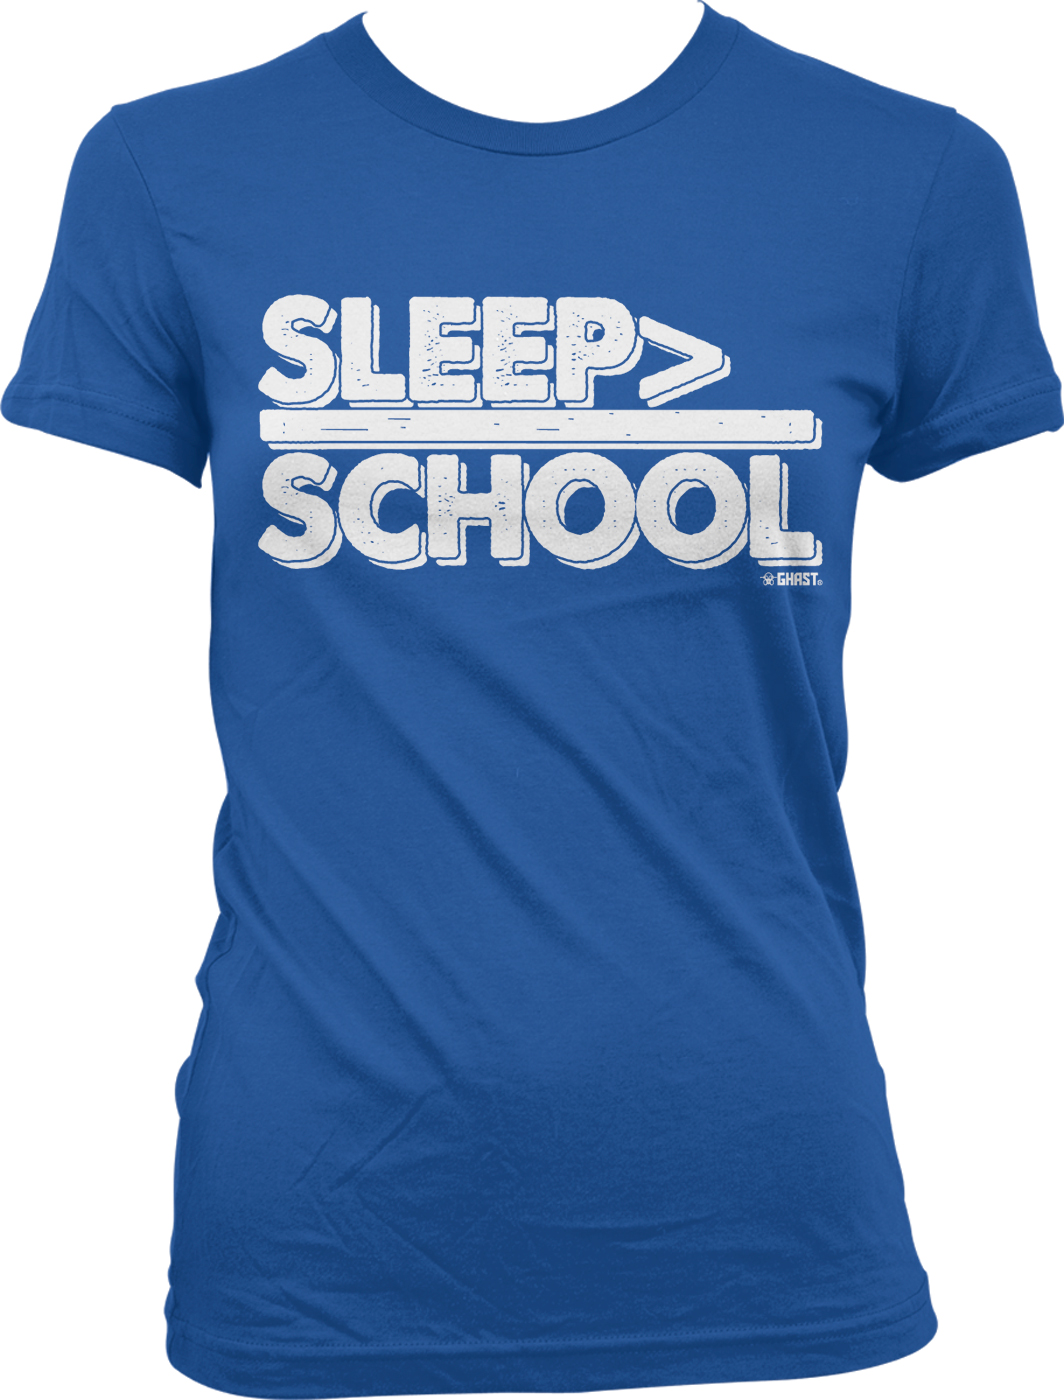 Sleep Is Greater Than School Funny Distressed Juniors T